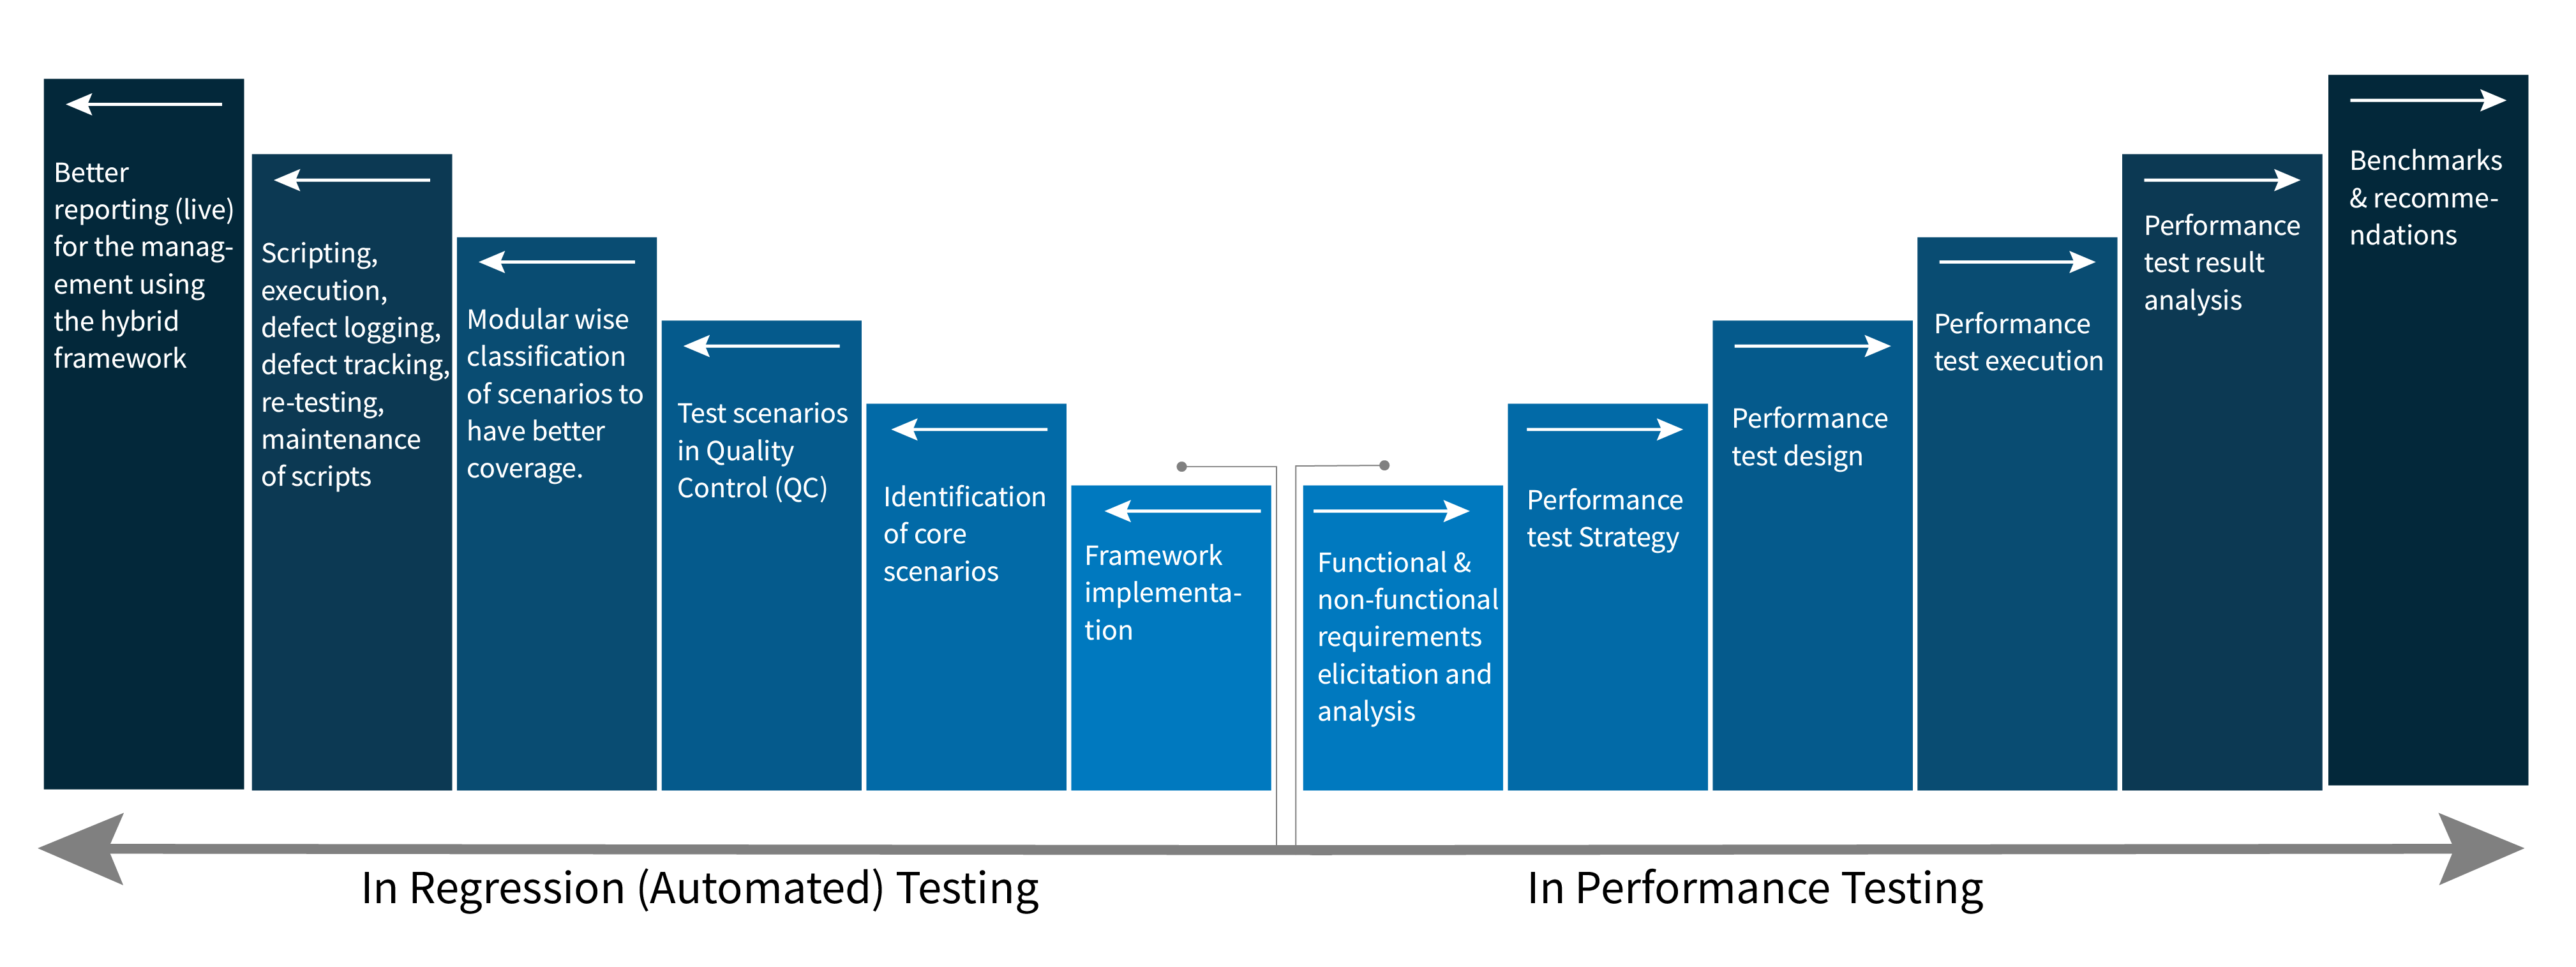 Technical Competencies around ERP Testing